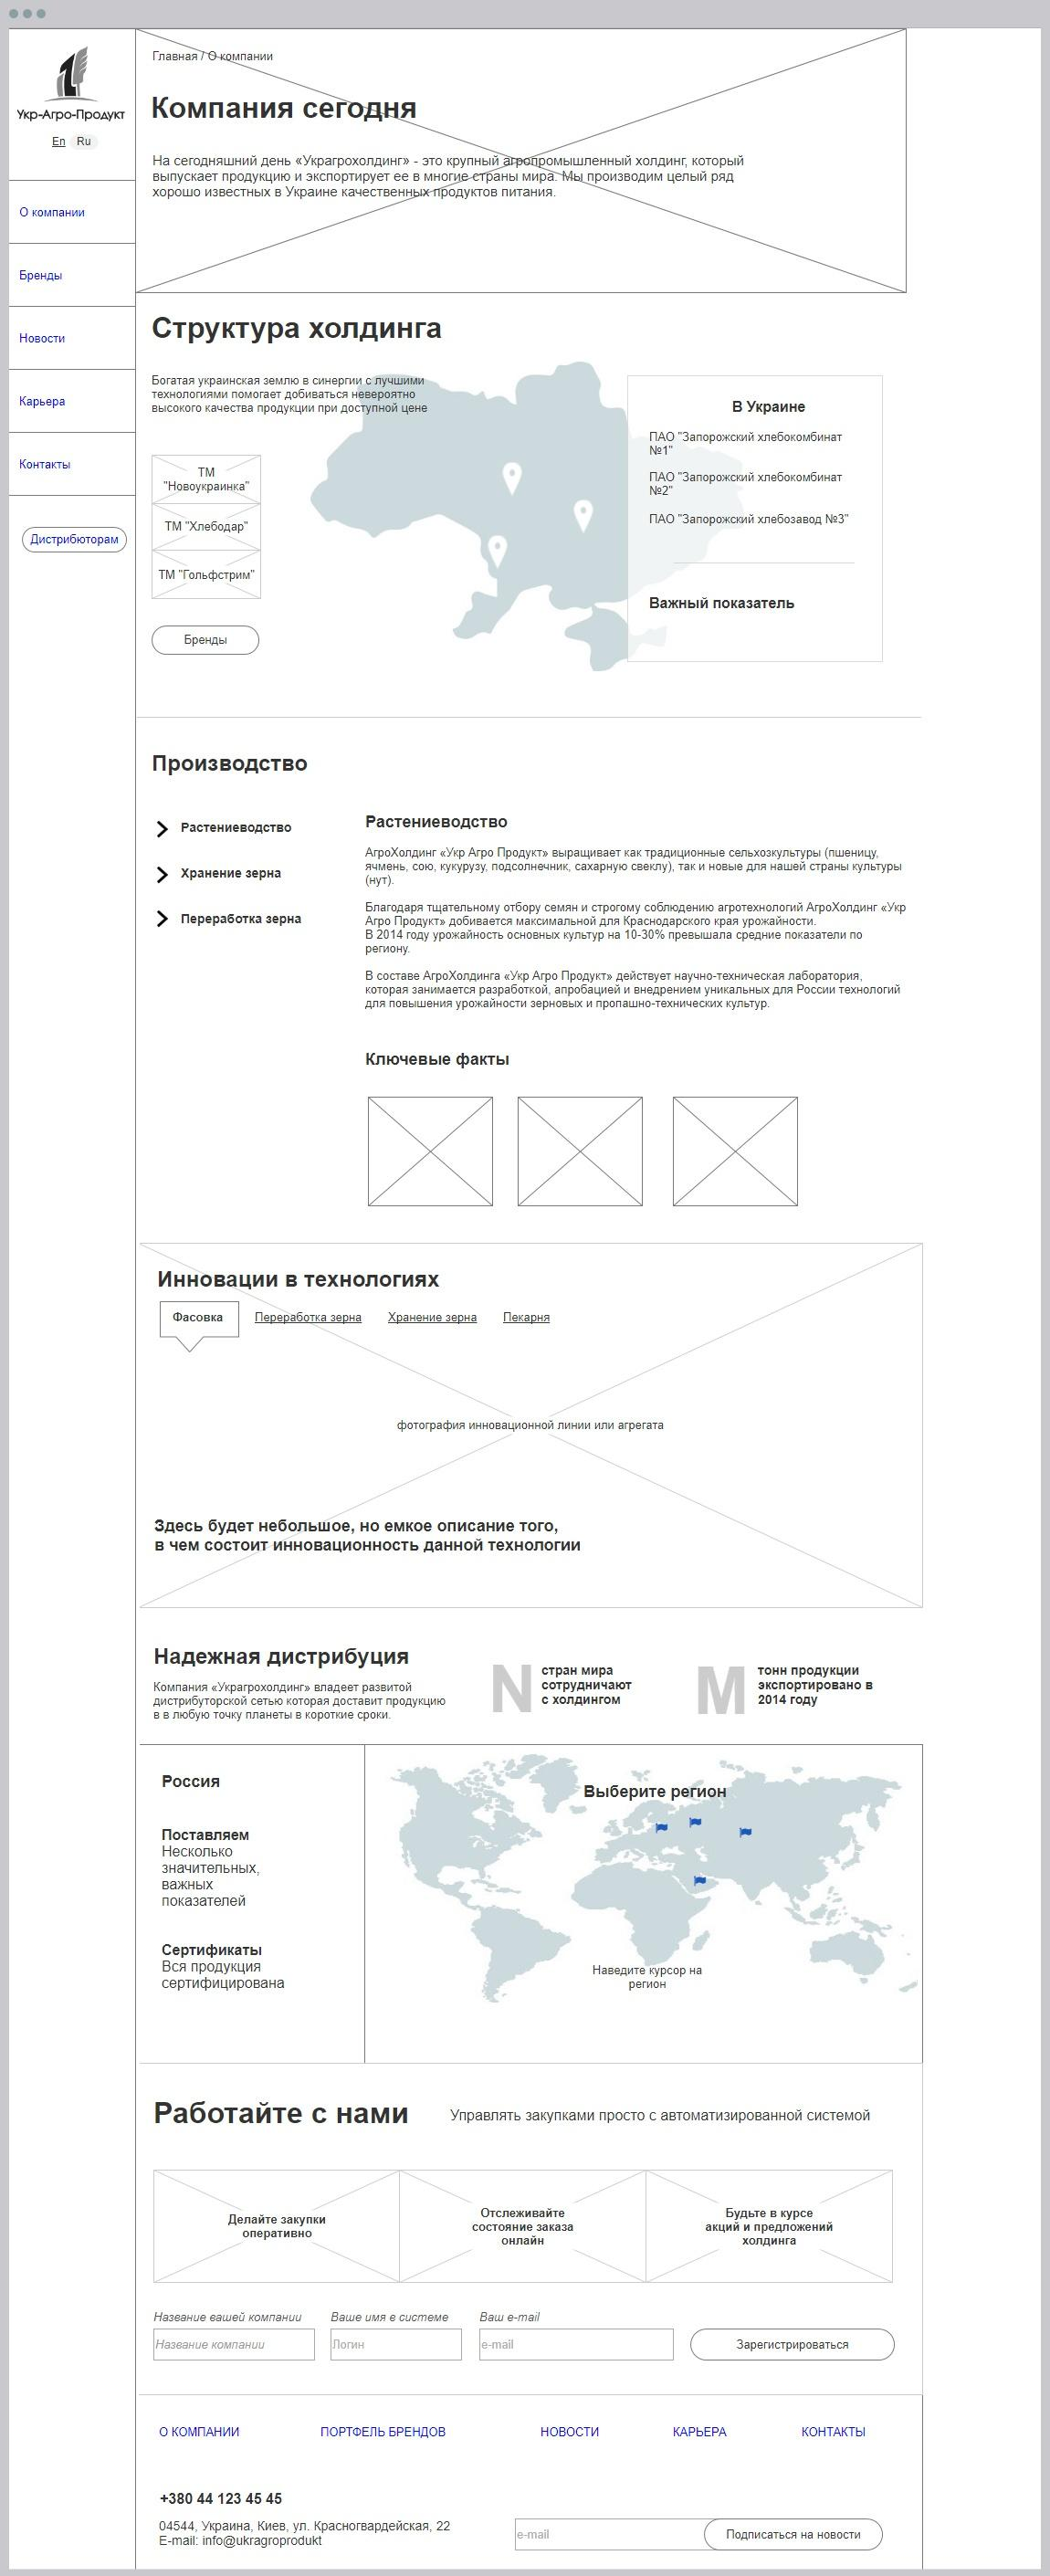 Prototype of corporate website Ukragroprodukt | Evergreen projects 11